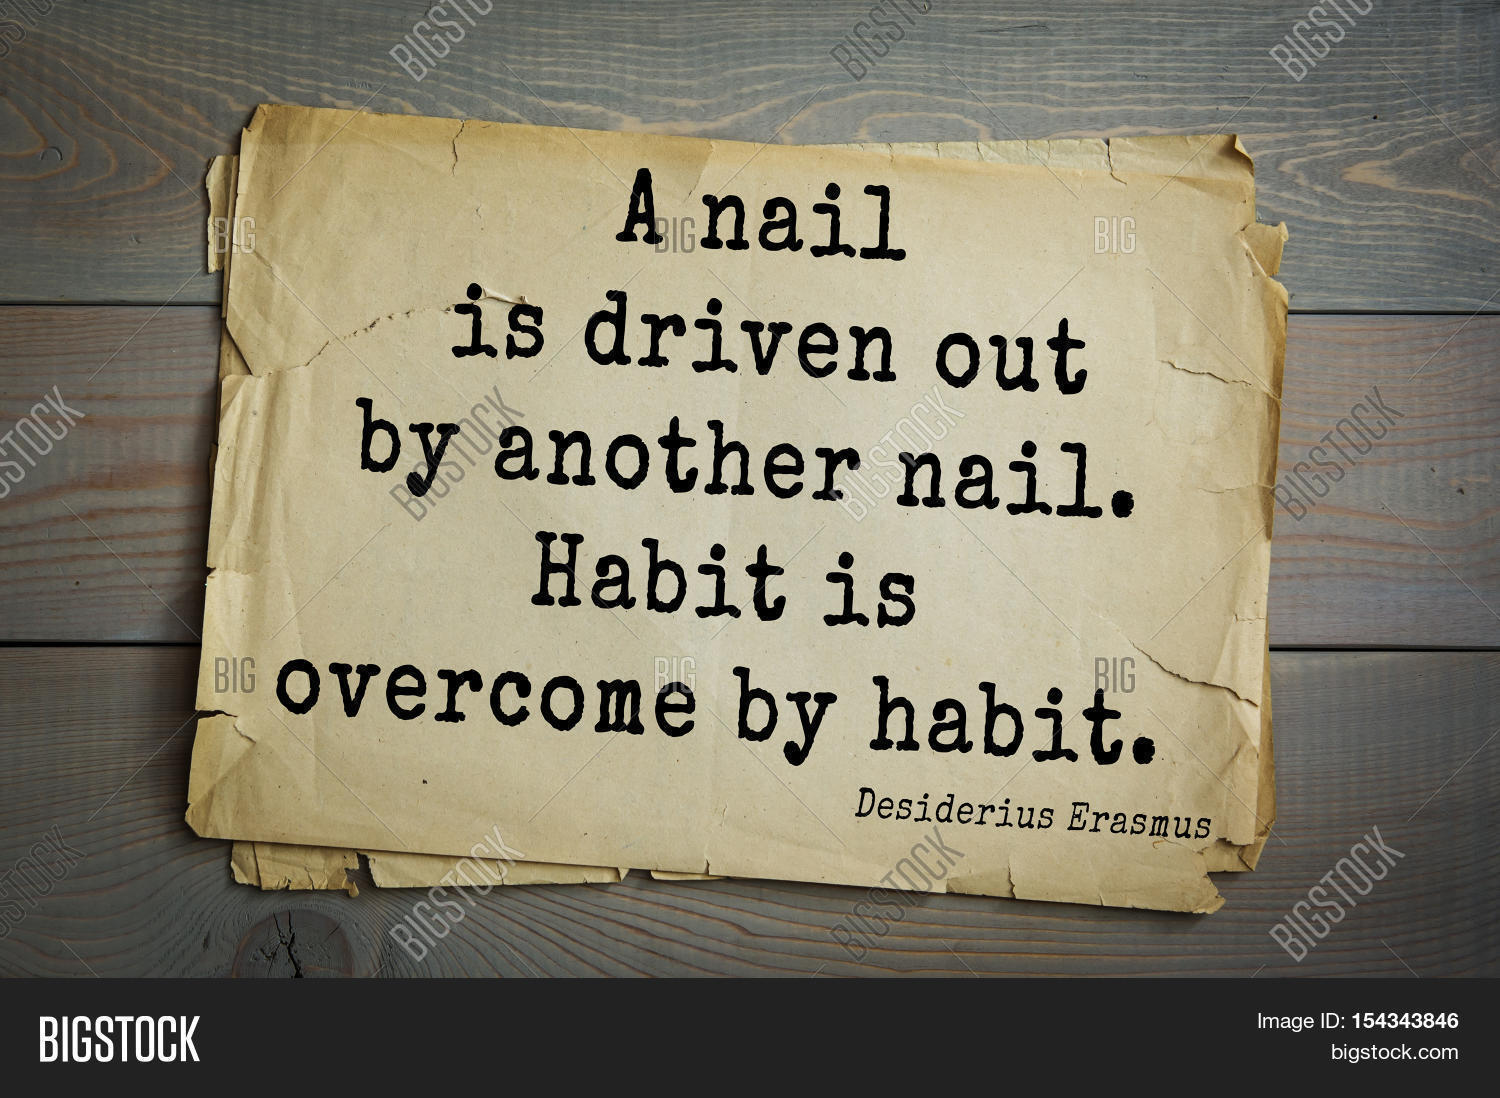 Image result for A nail was driven out by another nail; habit is overcome by habit. ~ Erasmus""